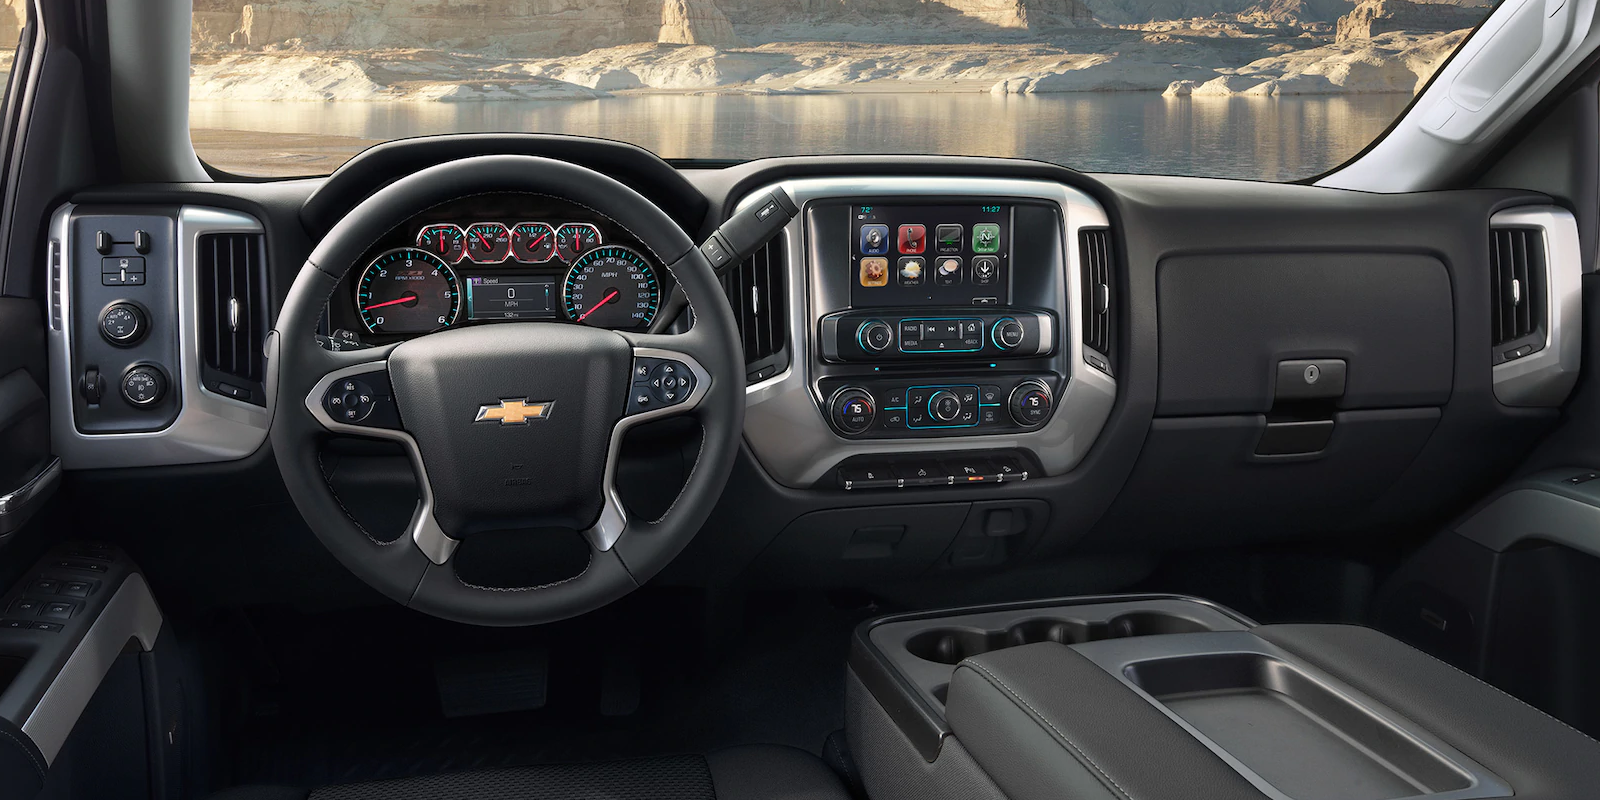 2019 Chevrolet Silverado 1500 Front Interior Dashboard Picture.png